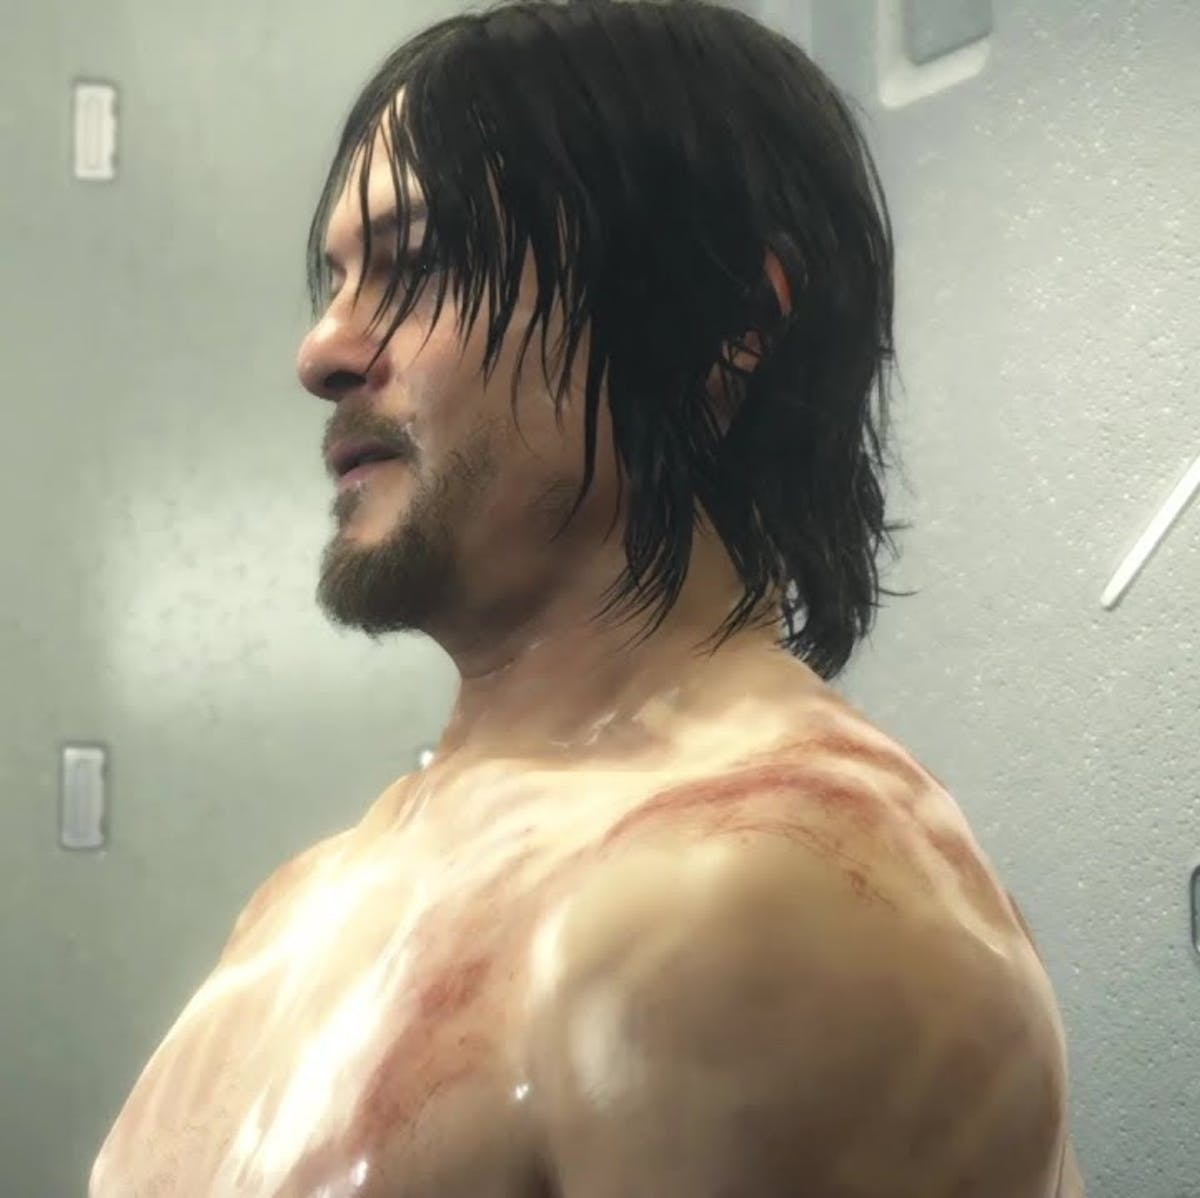 'Death Stranding' Plot and Gameplay Revealed at Tokyo Game Show 2019 Demo